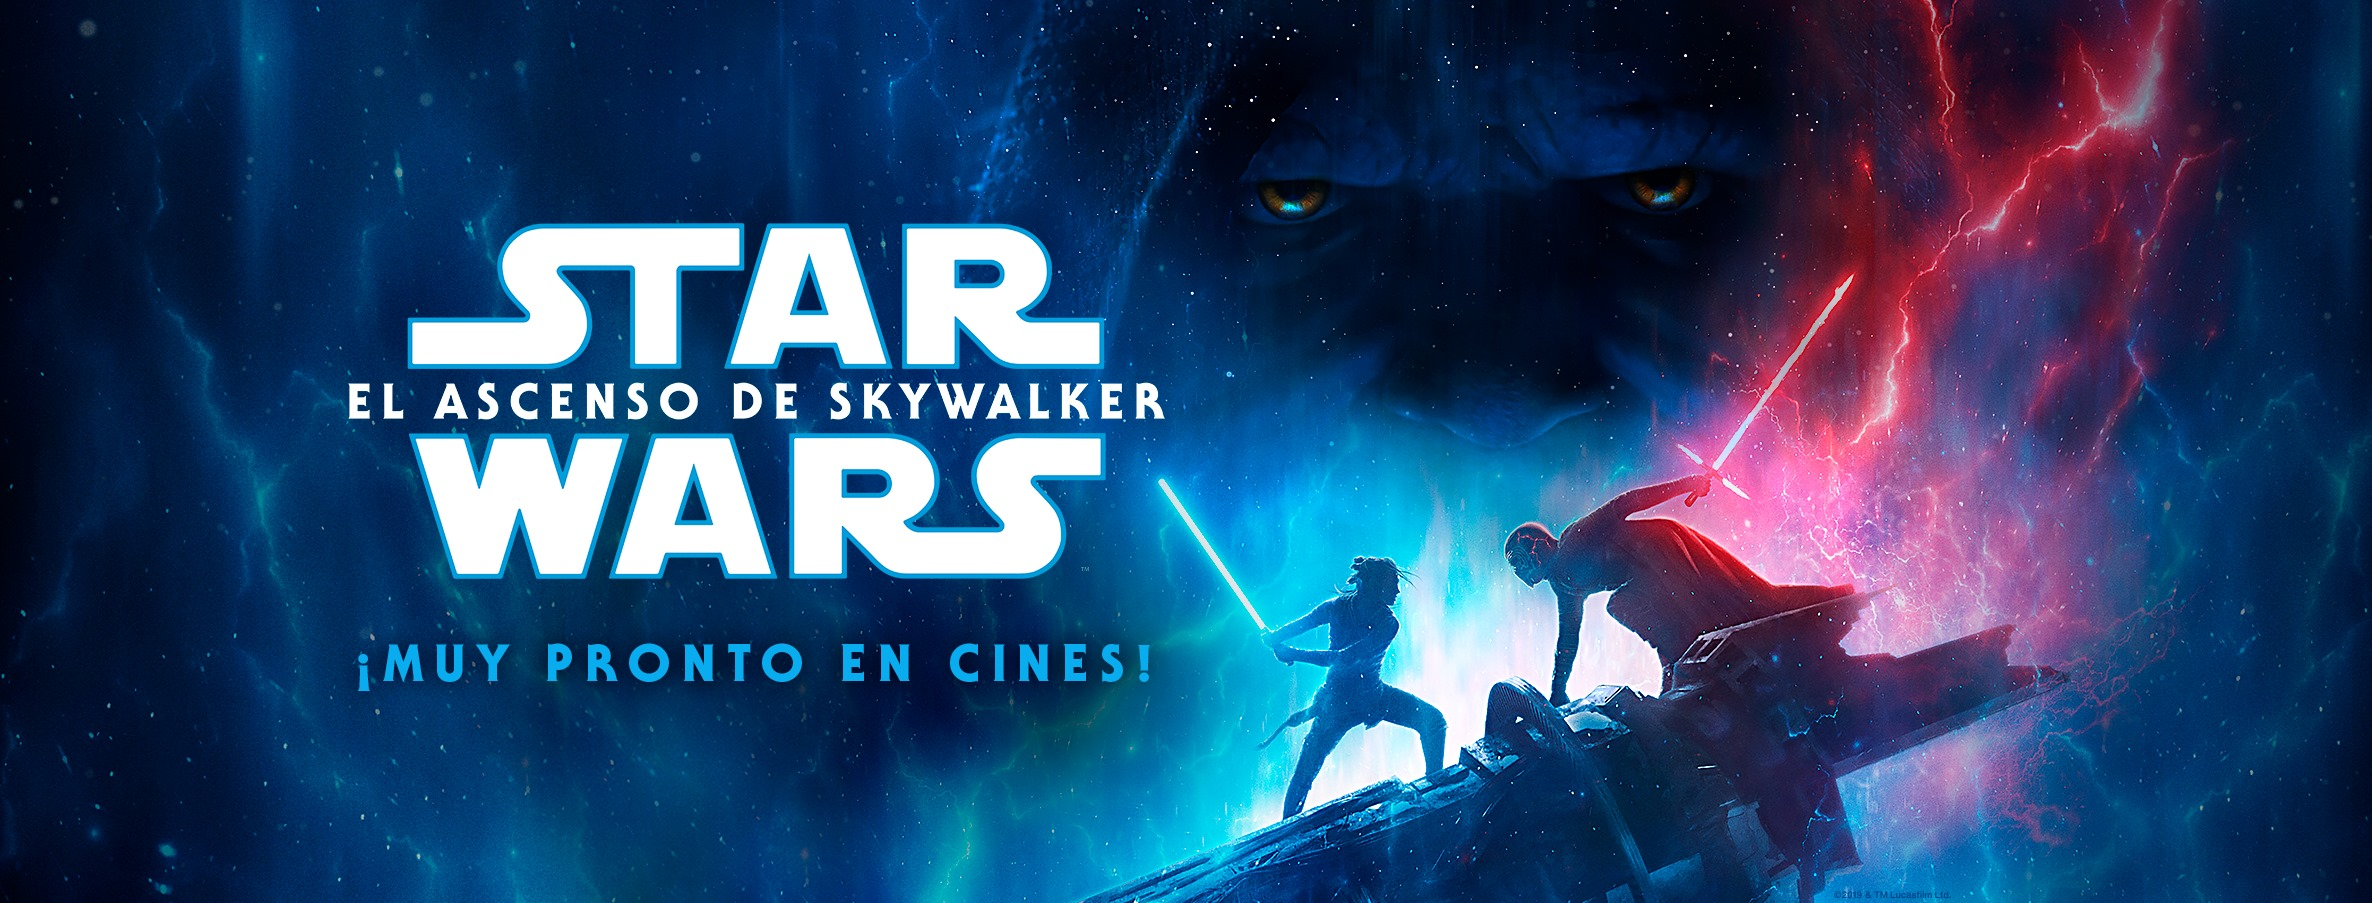 "Crítica de cine: ""Star Wars: El ascenso de Skywalker"""